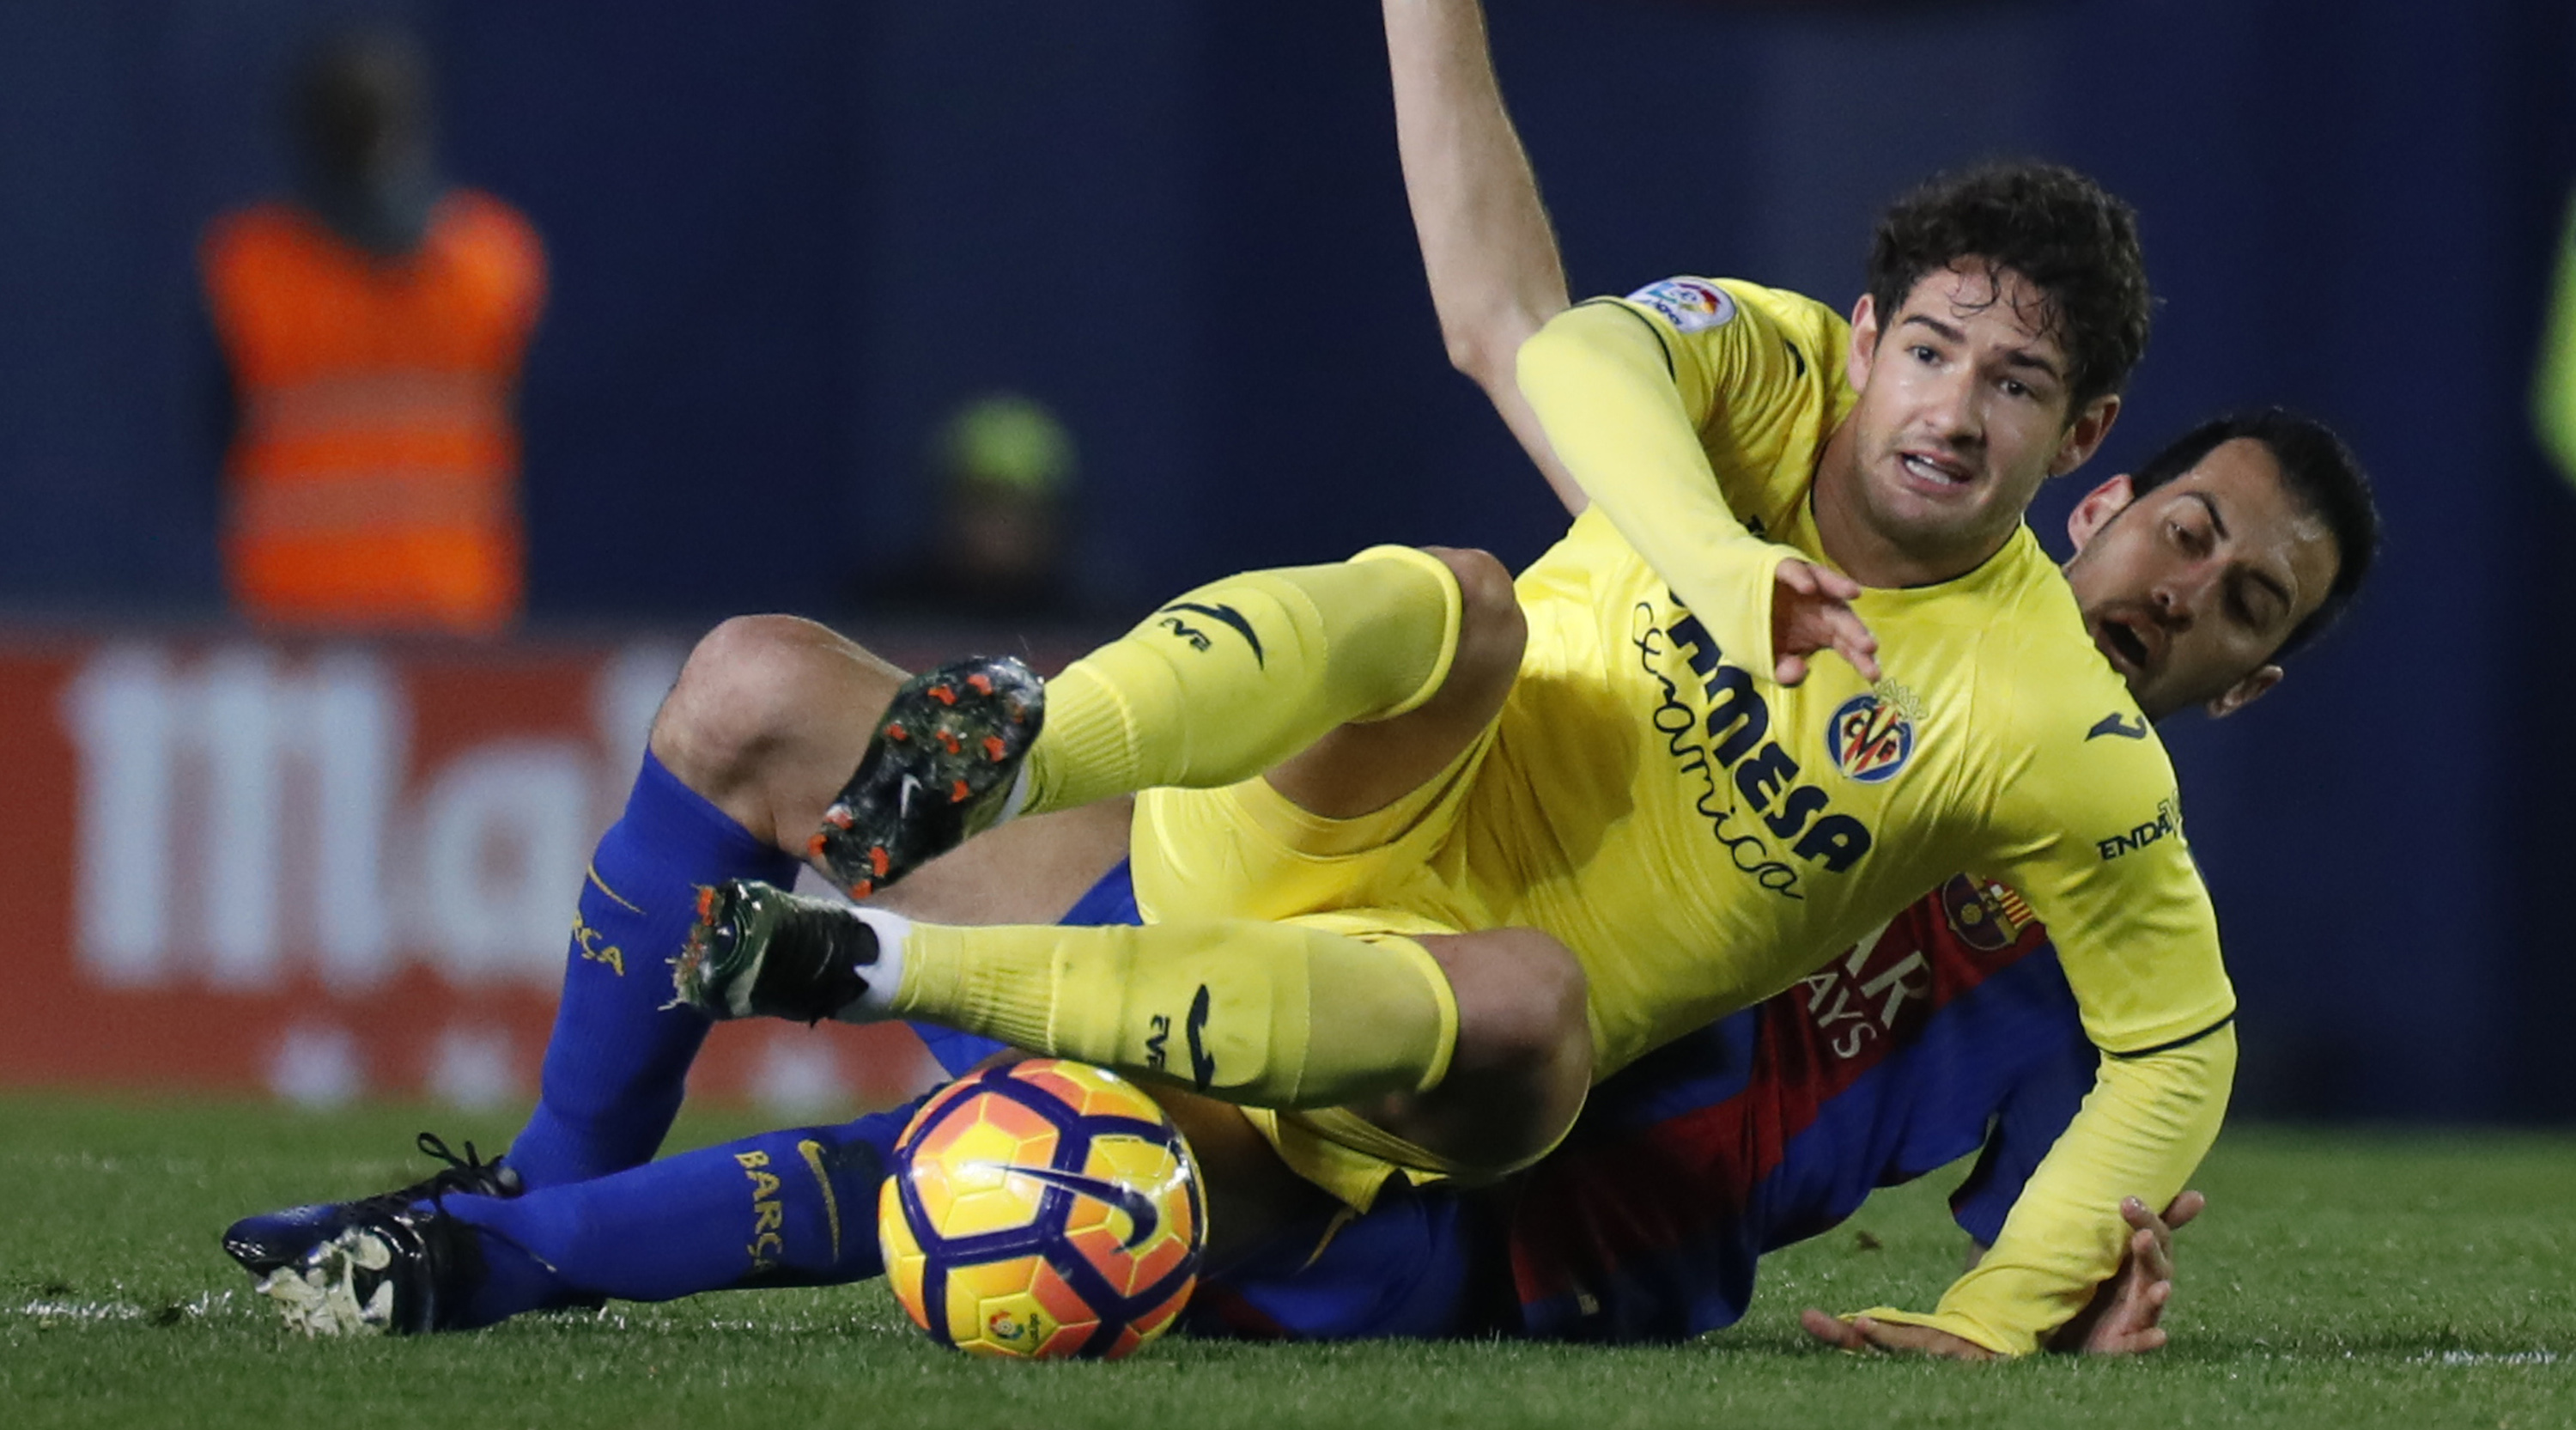 "Villarreal's Brazilian forward Alexandre Rodrigues ""Pato"" (L) vies with Barcelona's midfielder Sergio Busquets during the Spanish league football match Villarreal CF vs FC Barcelona at El Madrigal stadium in Vila-real on January 8, 2017. / AFP / JOSE JORDAN (Photo credit should read JOSE JORDAN/AFP/Getty Images)"